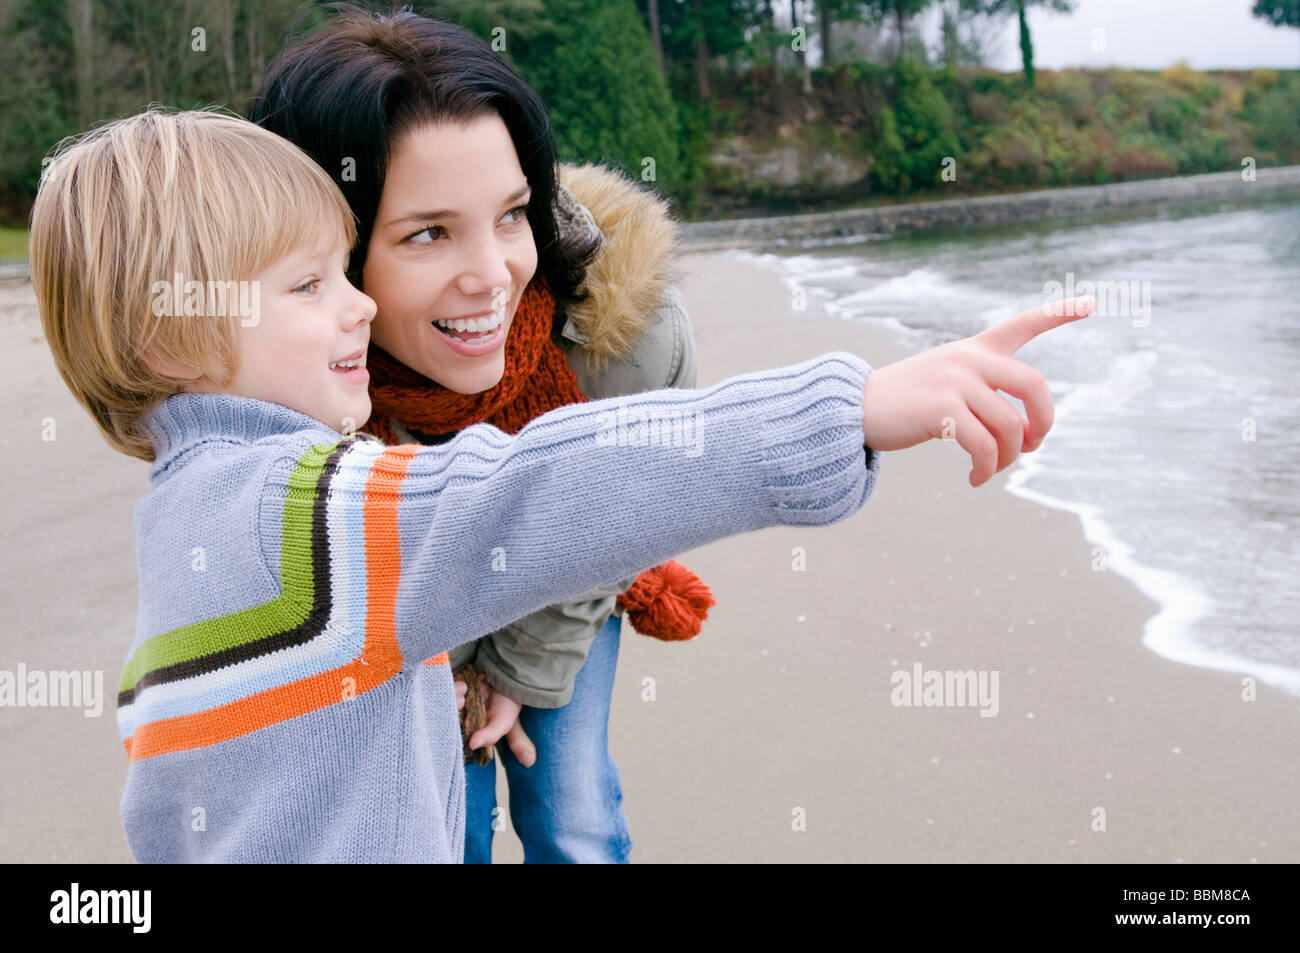 Young boy with mother points toward ocean, Vancouver, British Columbia - Stock Image